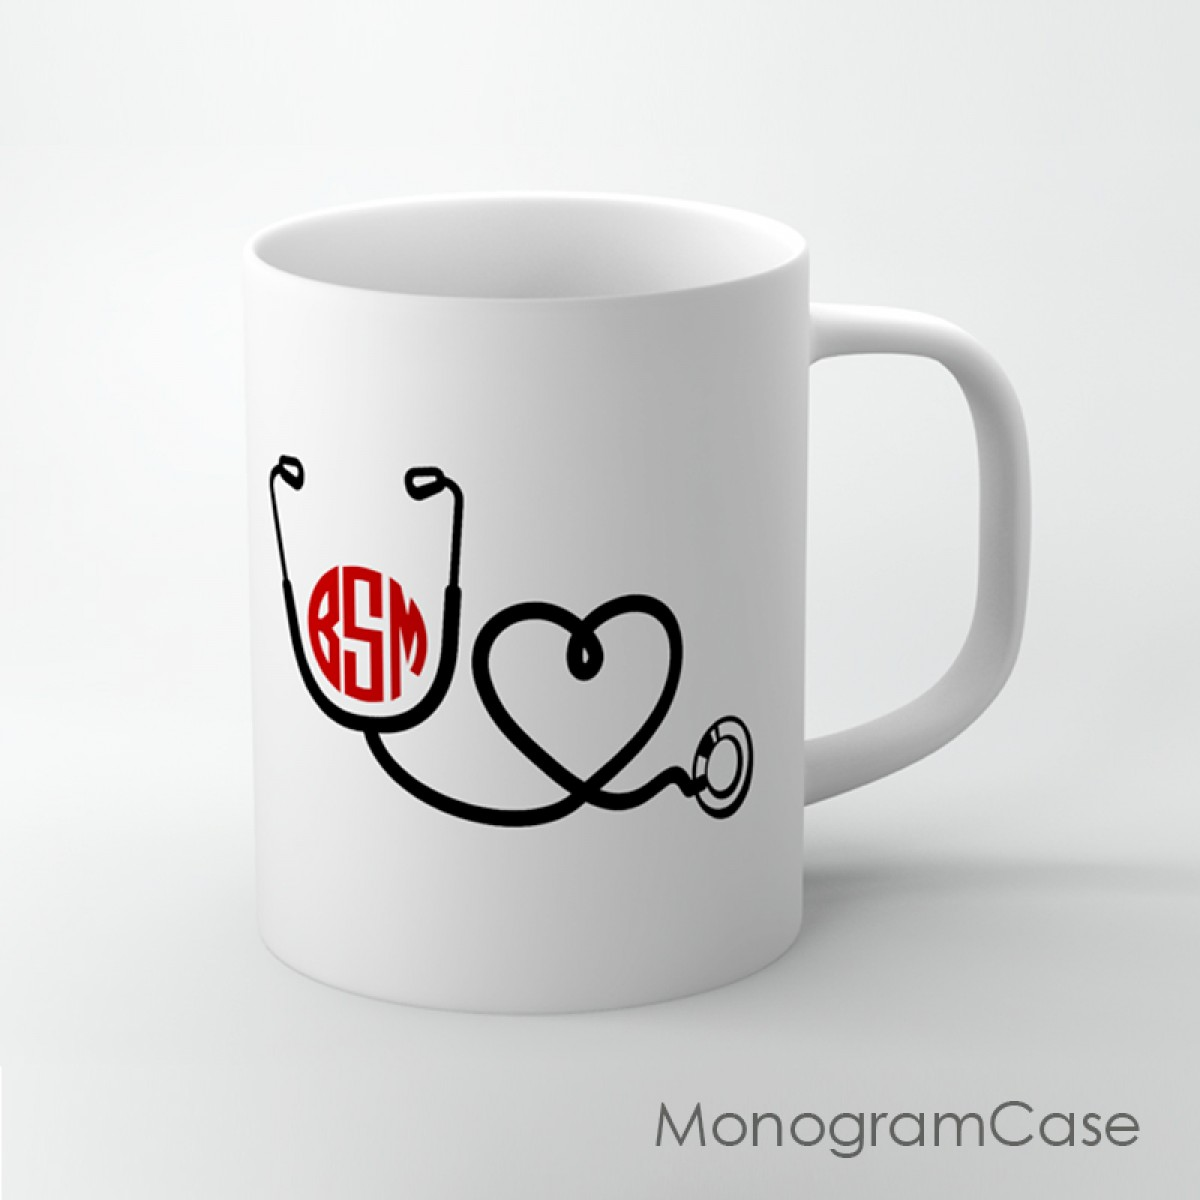 Worlds best doctor coffee mugs - Nurse Stethoscope Doctor Medical Design Monogrammed Coffee Cup